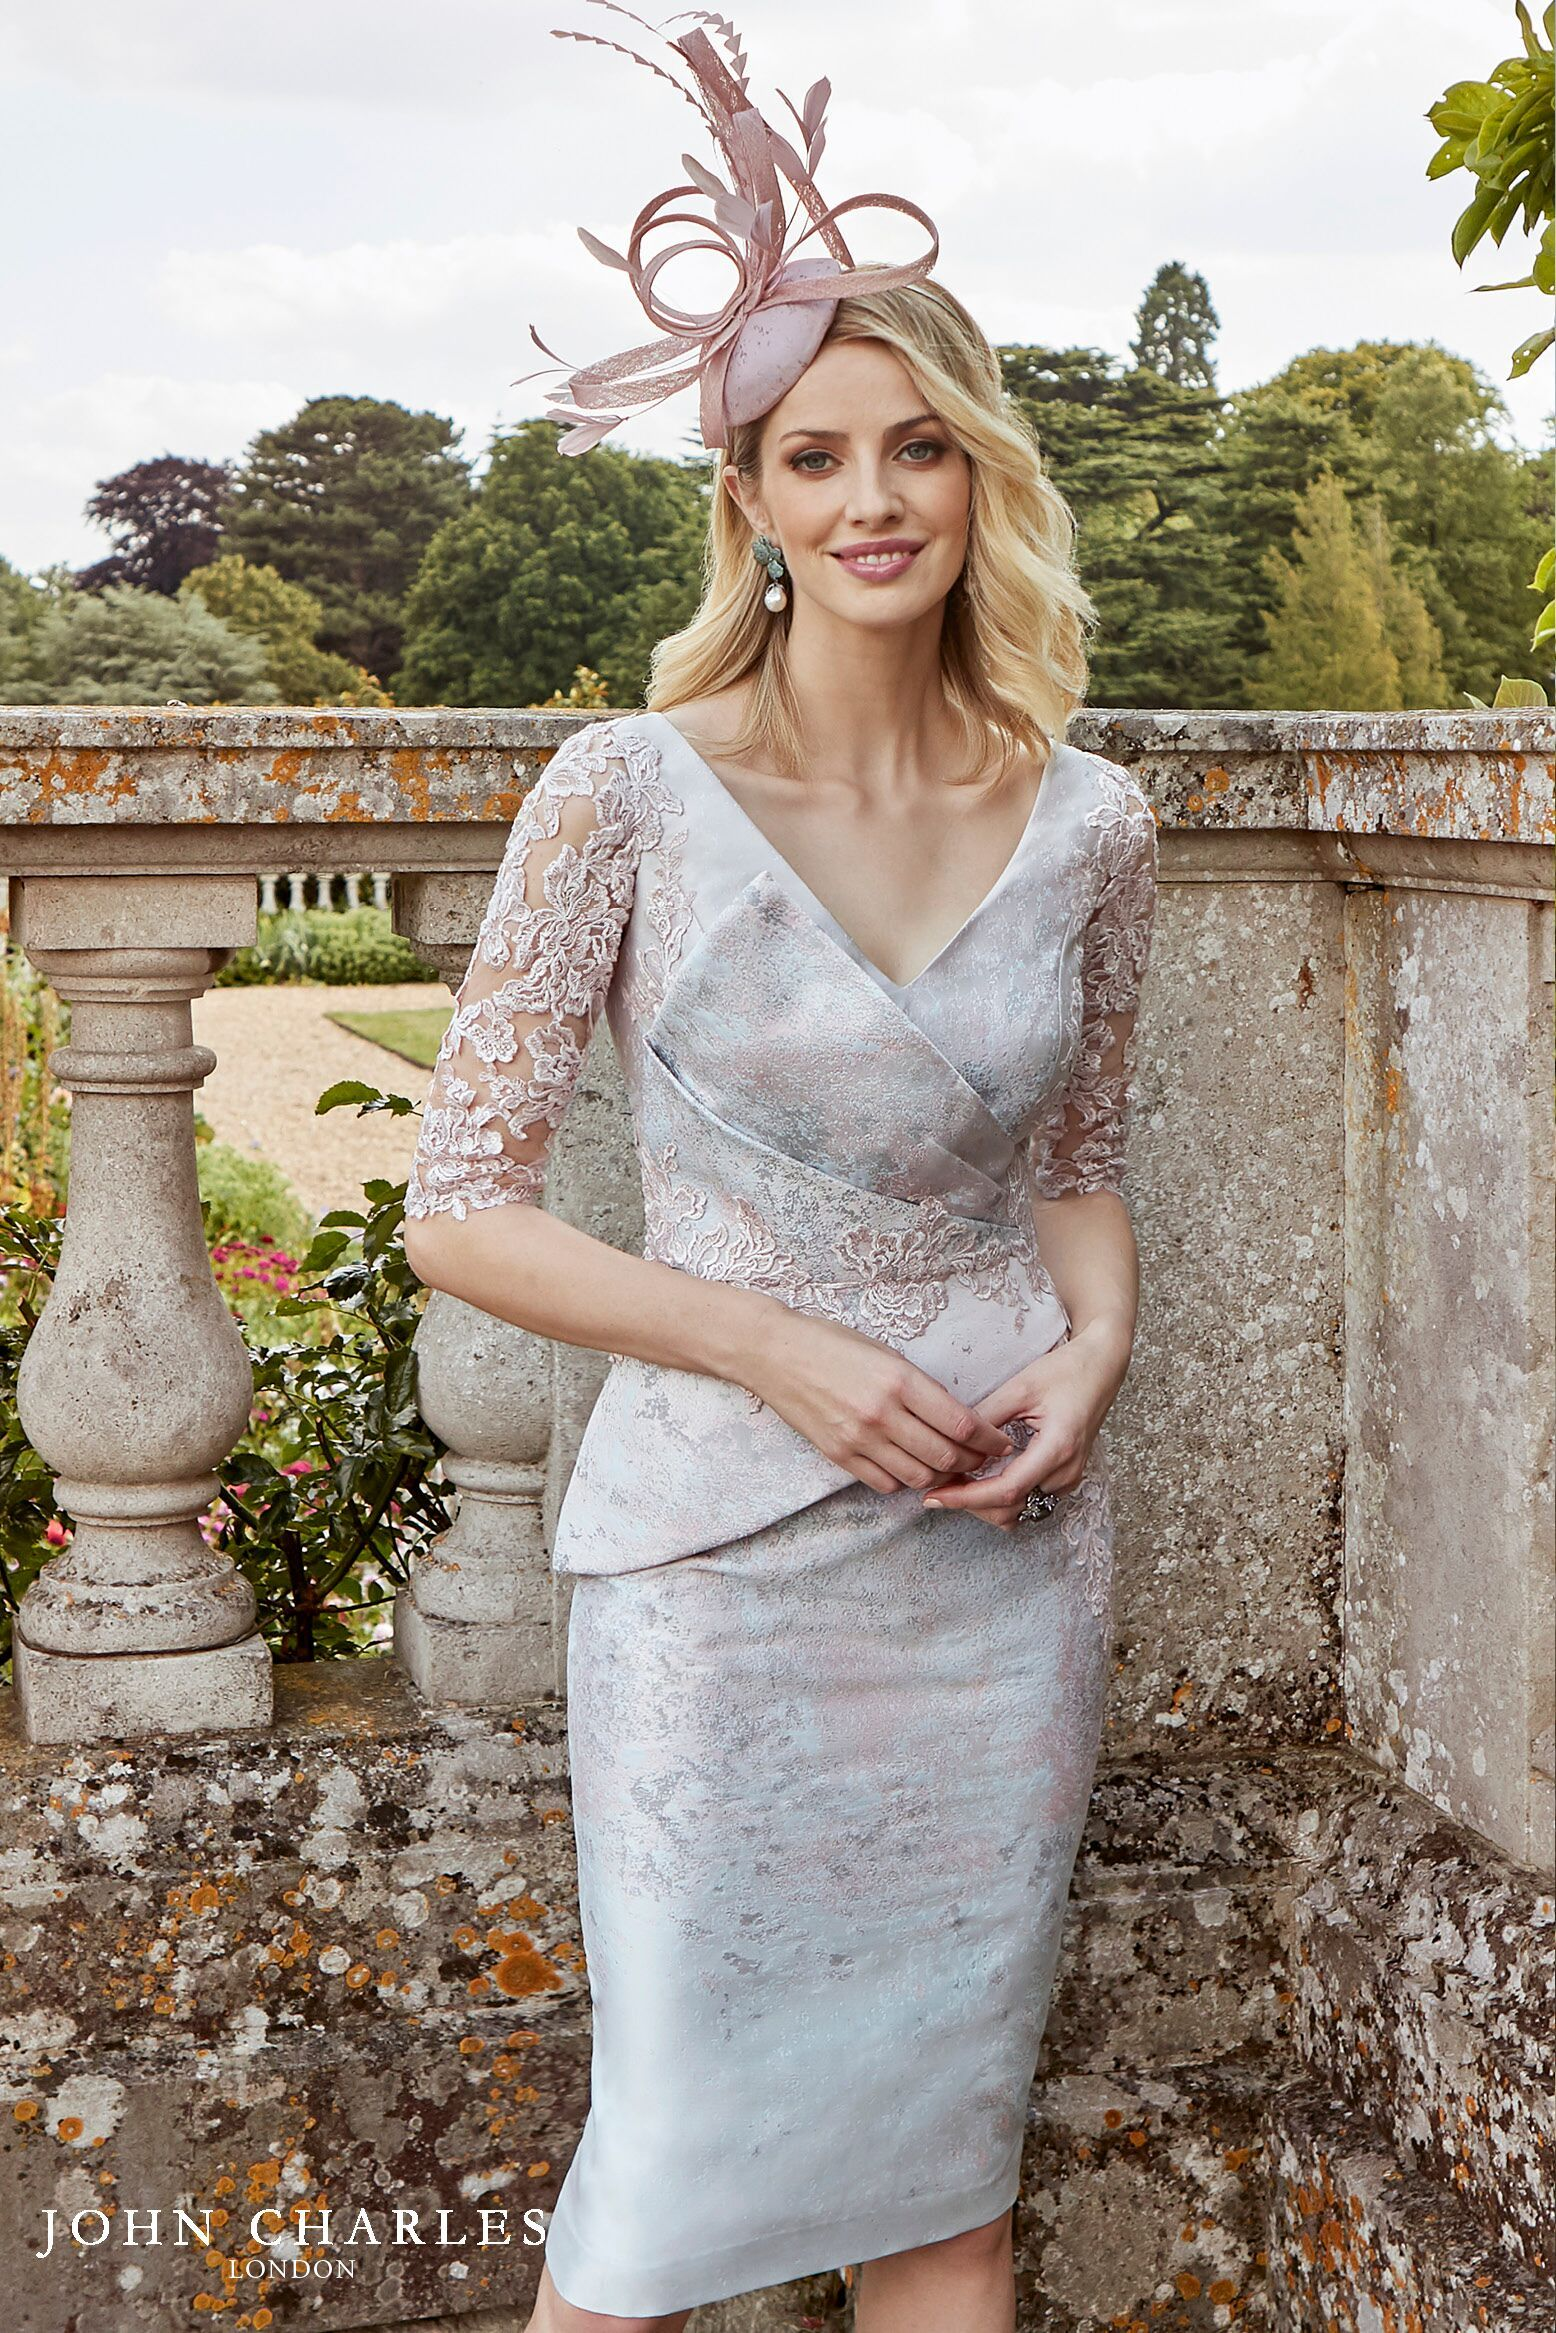 John Charles 26844 Blush Dresses Mother Of The Bride Stunning Outfits